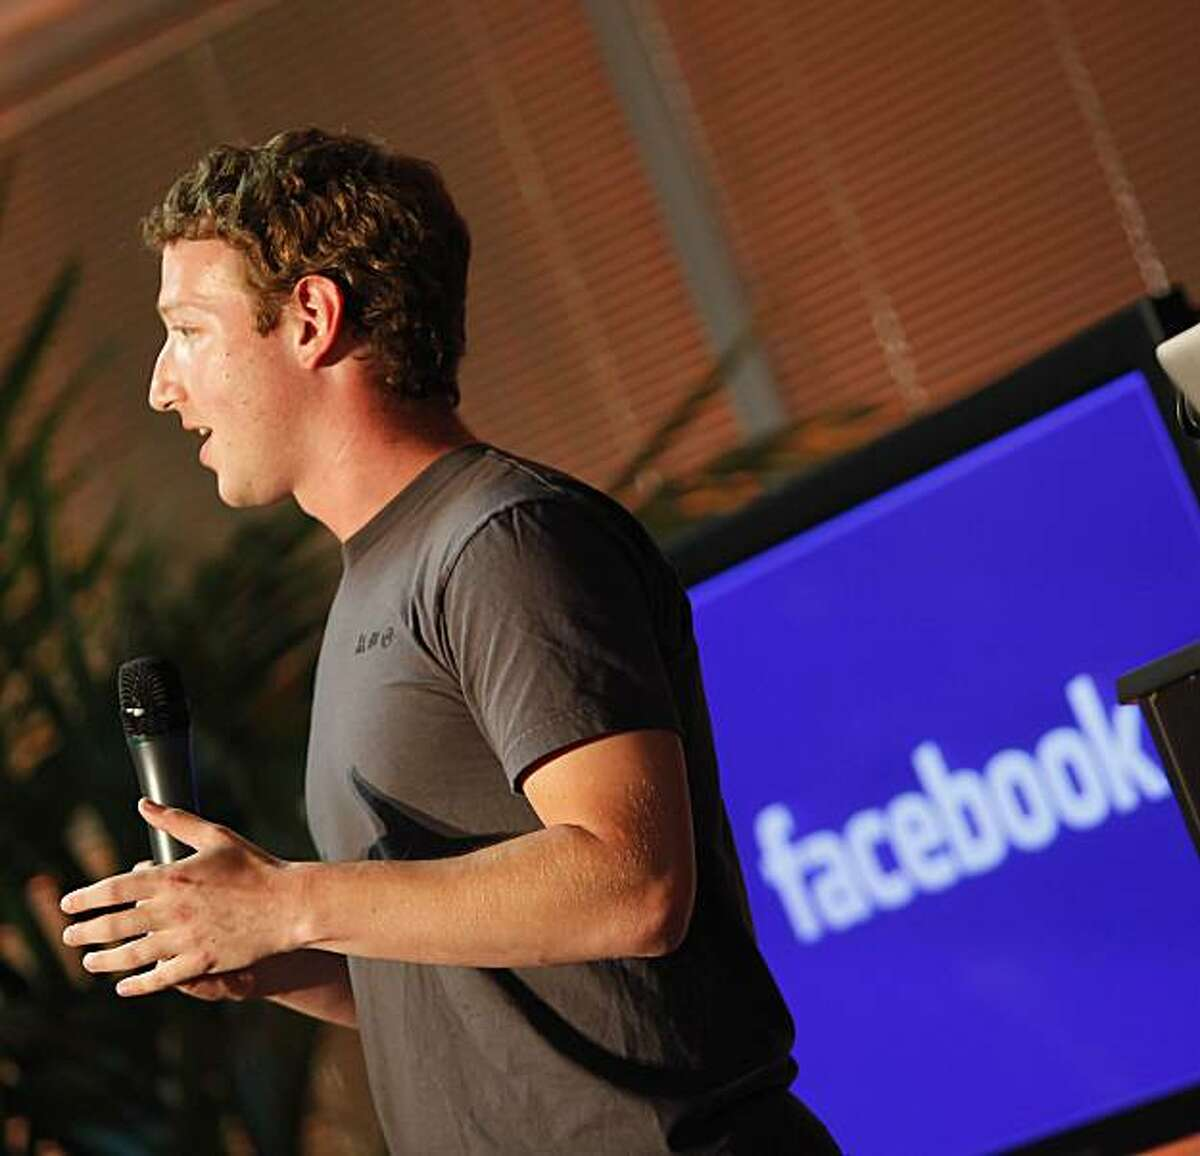 """Facebook founder and CEO Mark Zuckerberg speaks during a press conference announciing a new feature of Facebook named """"Places"""" in Palo Alto, Calif. on Wednesday August 18, 2010. Places will allow users to share where you are, see where your friends are and discover new places."""